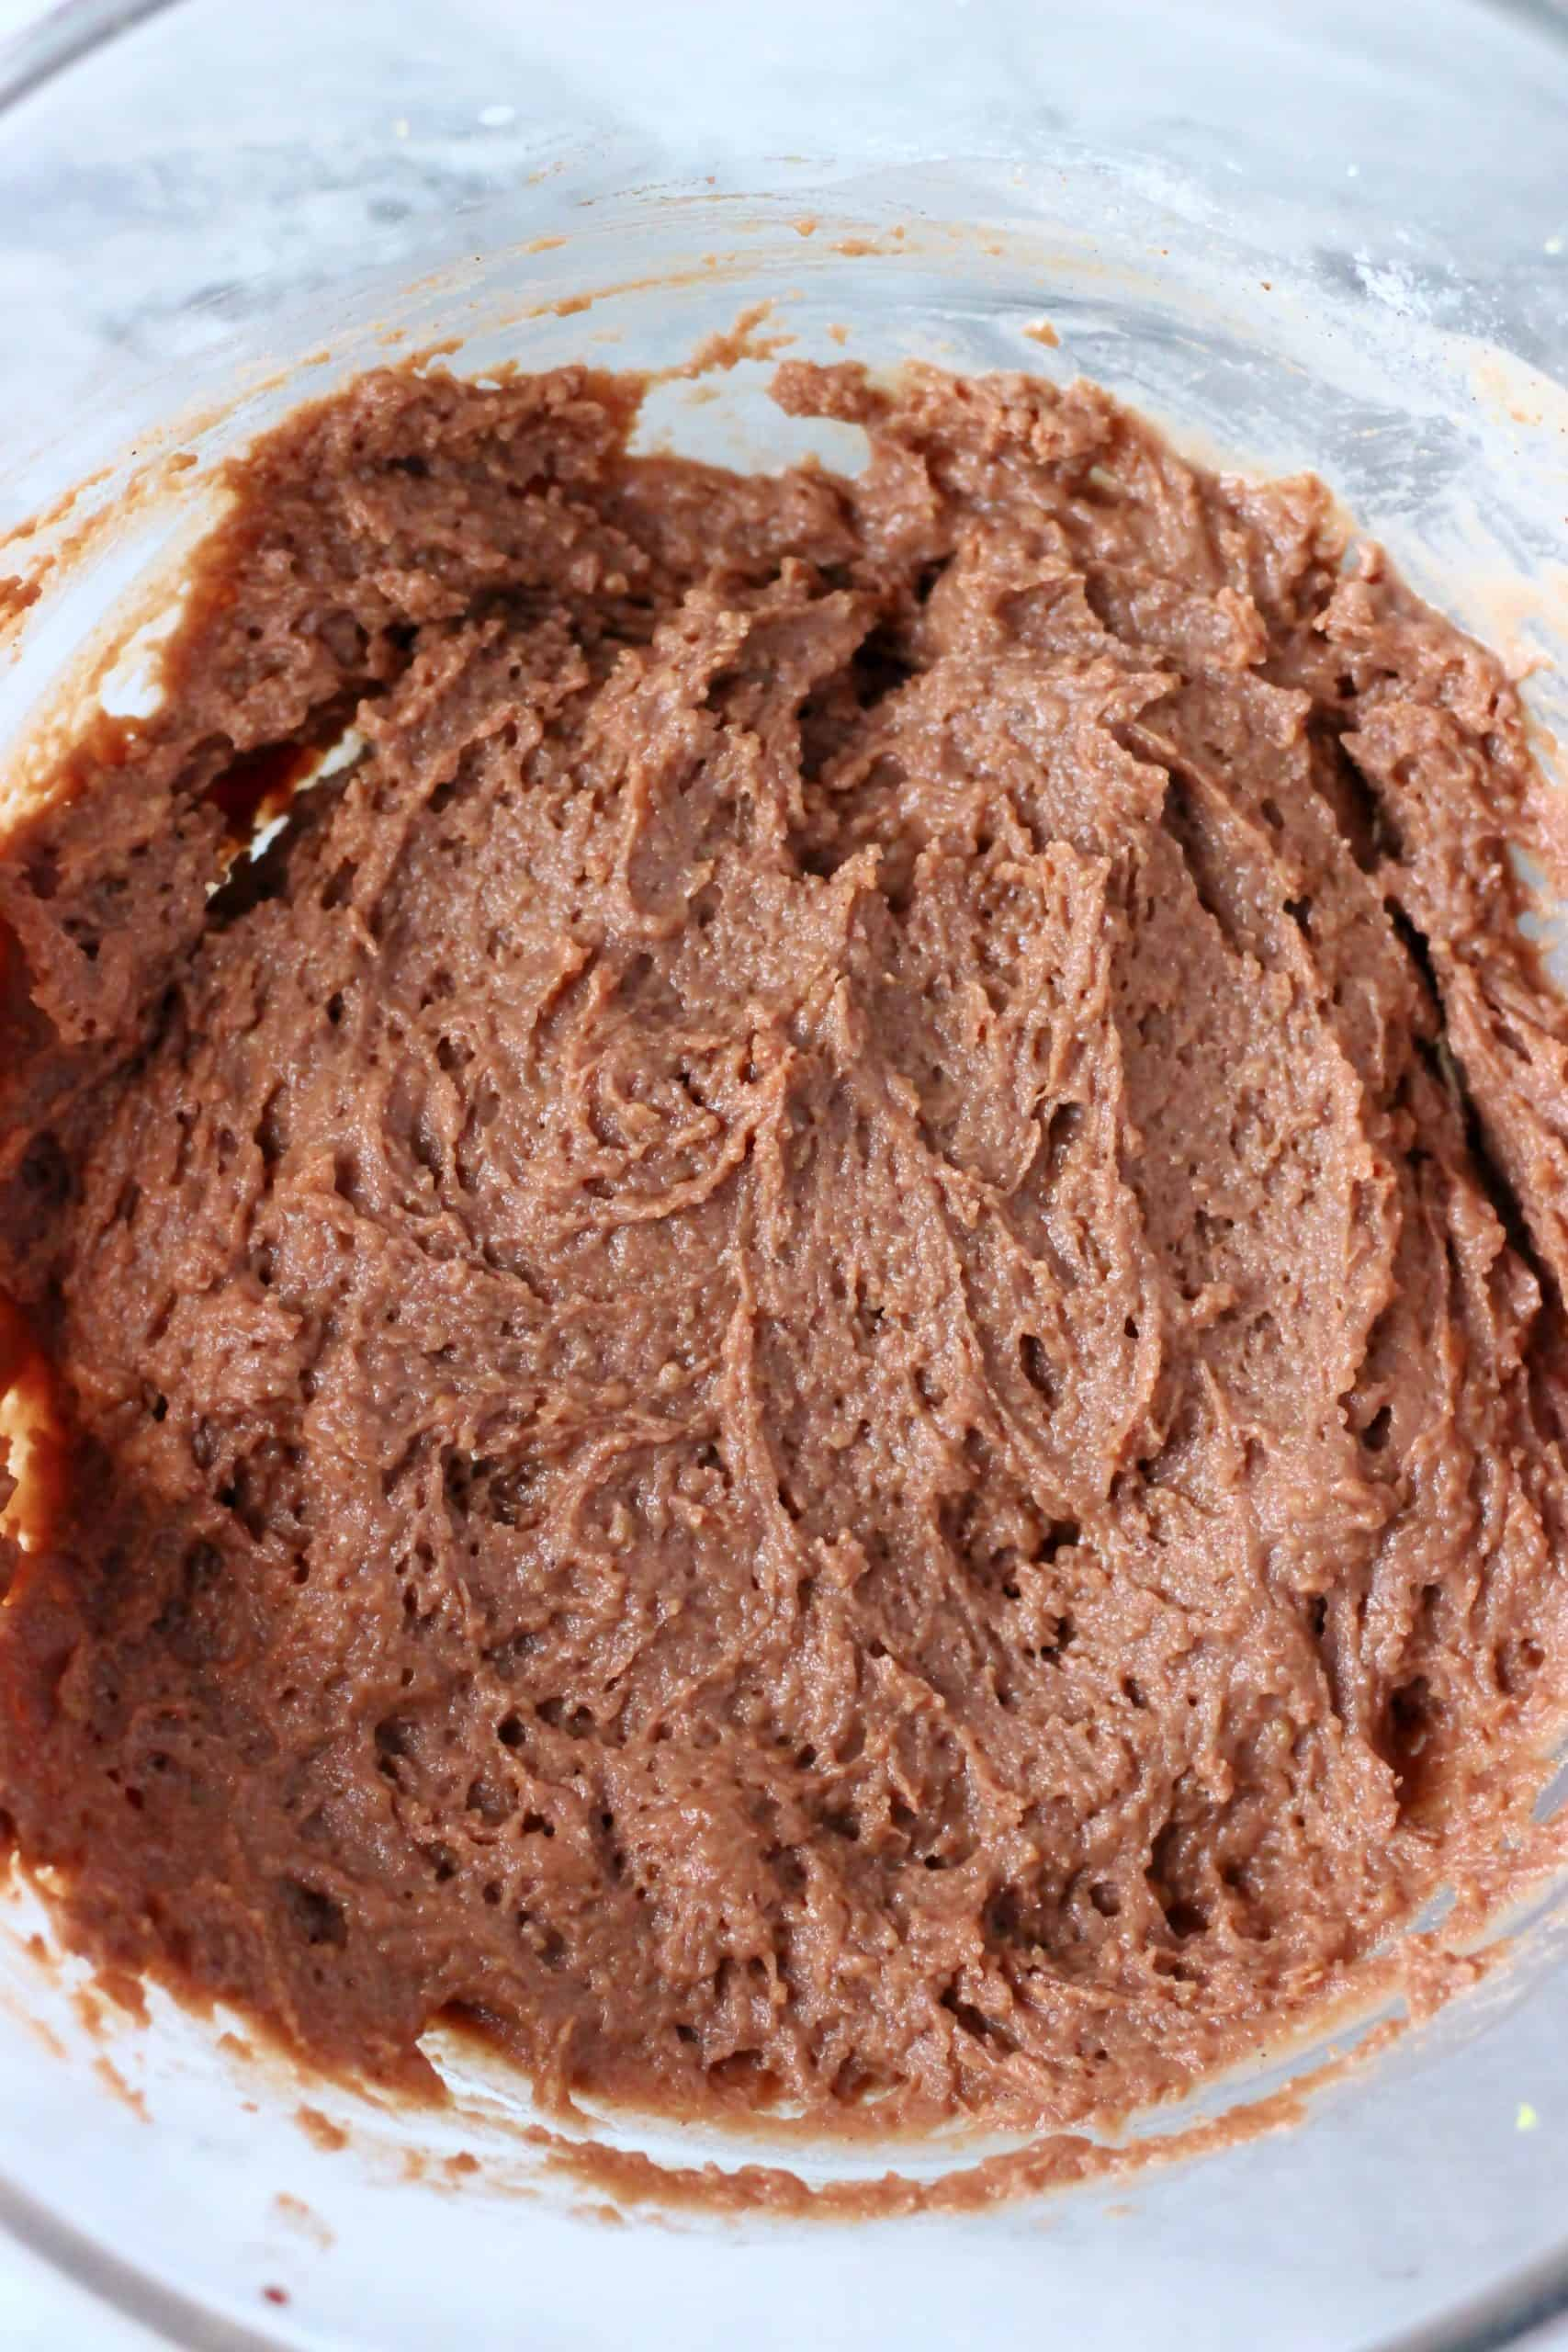 Raw gluten-free vegan gingerbread loaf cake batter in a bowl